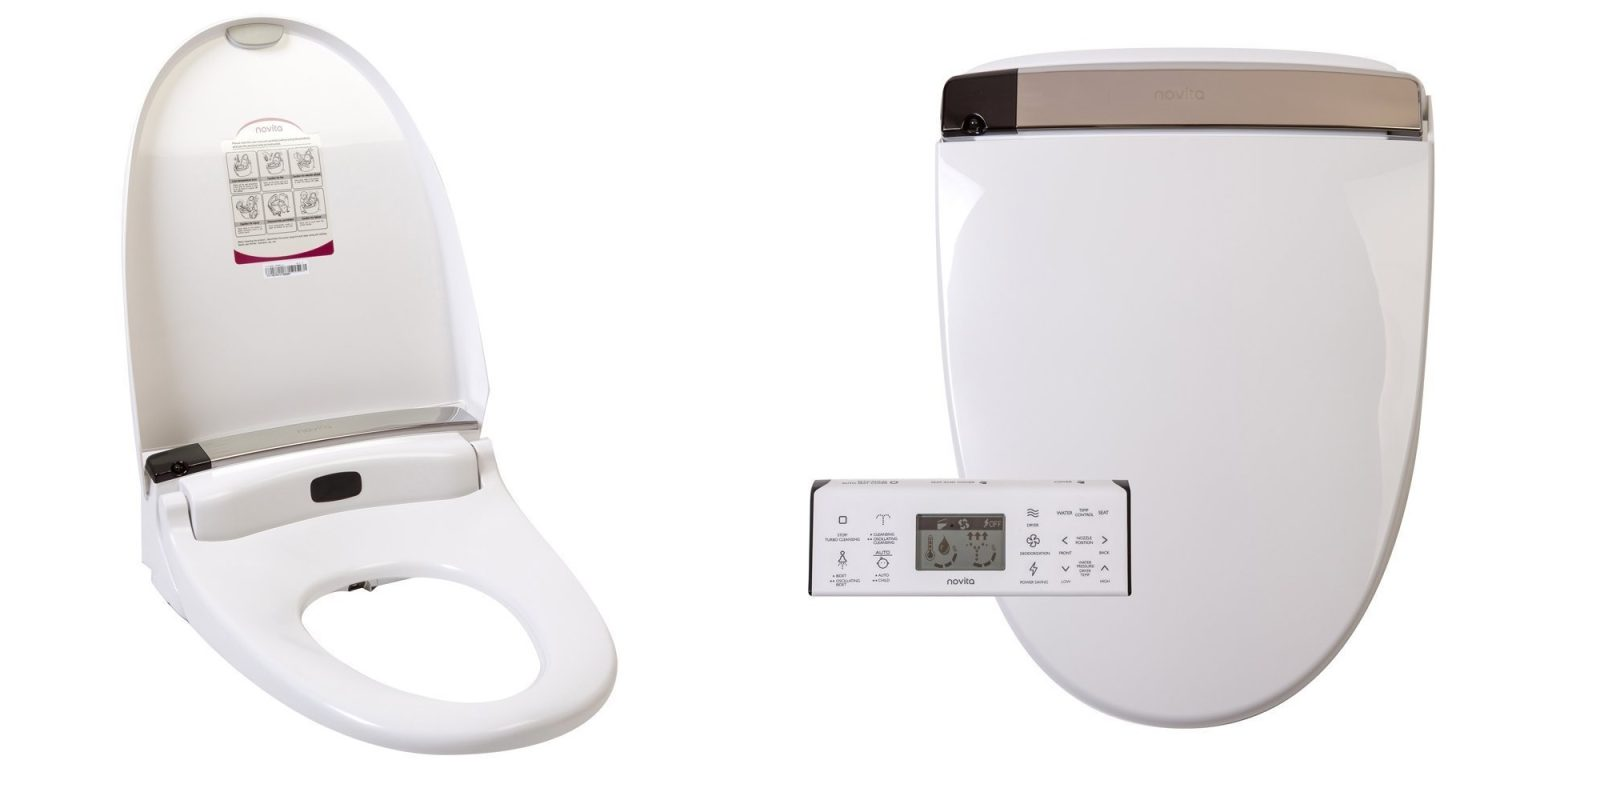 Upgrade Your Toilet With A Kohler Electric Bidet Seat At